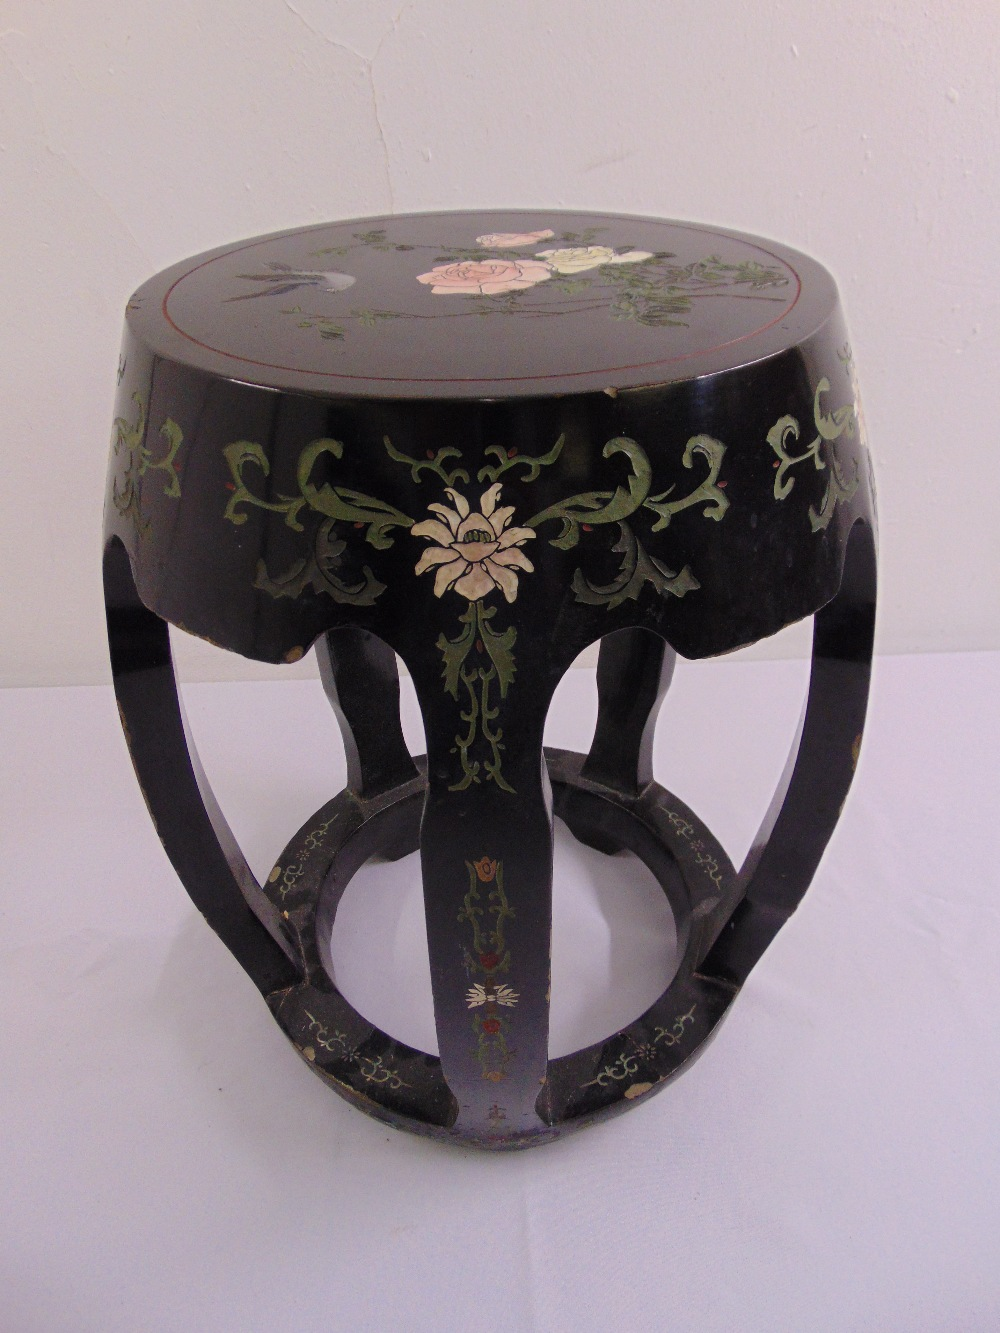 Lot 31 - A mid 20th century conical shaped garden seat lacquered and painted with flowers and leaves in the